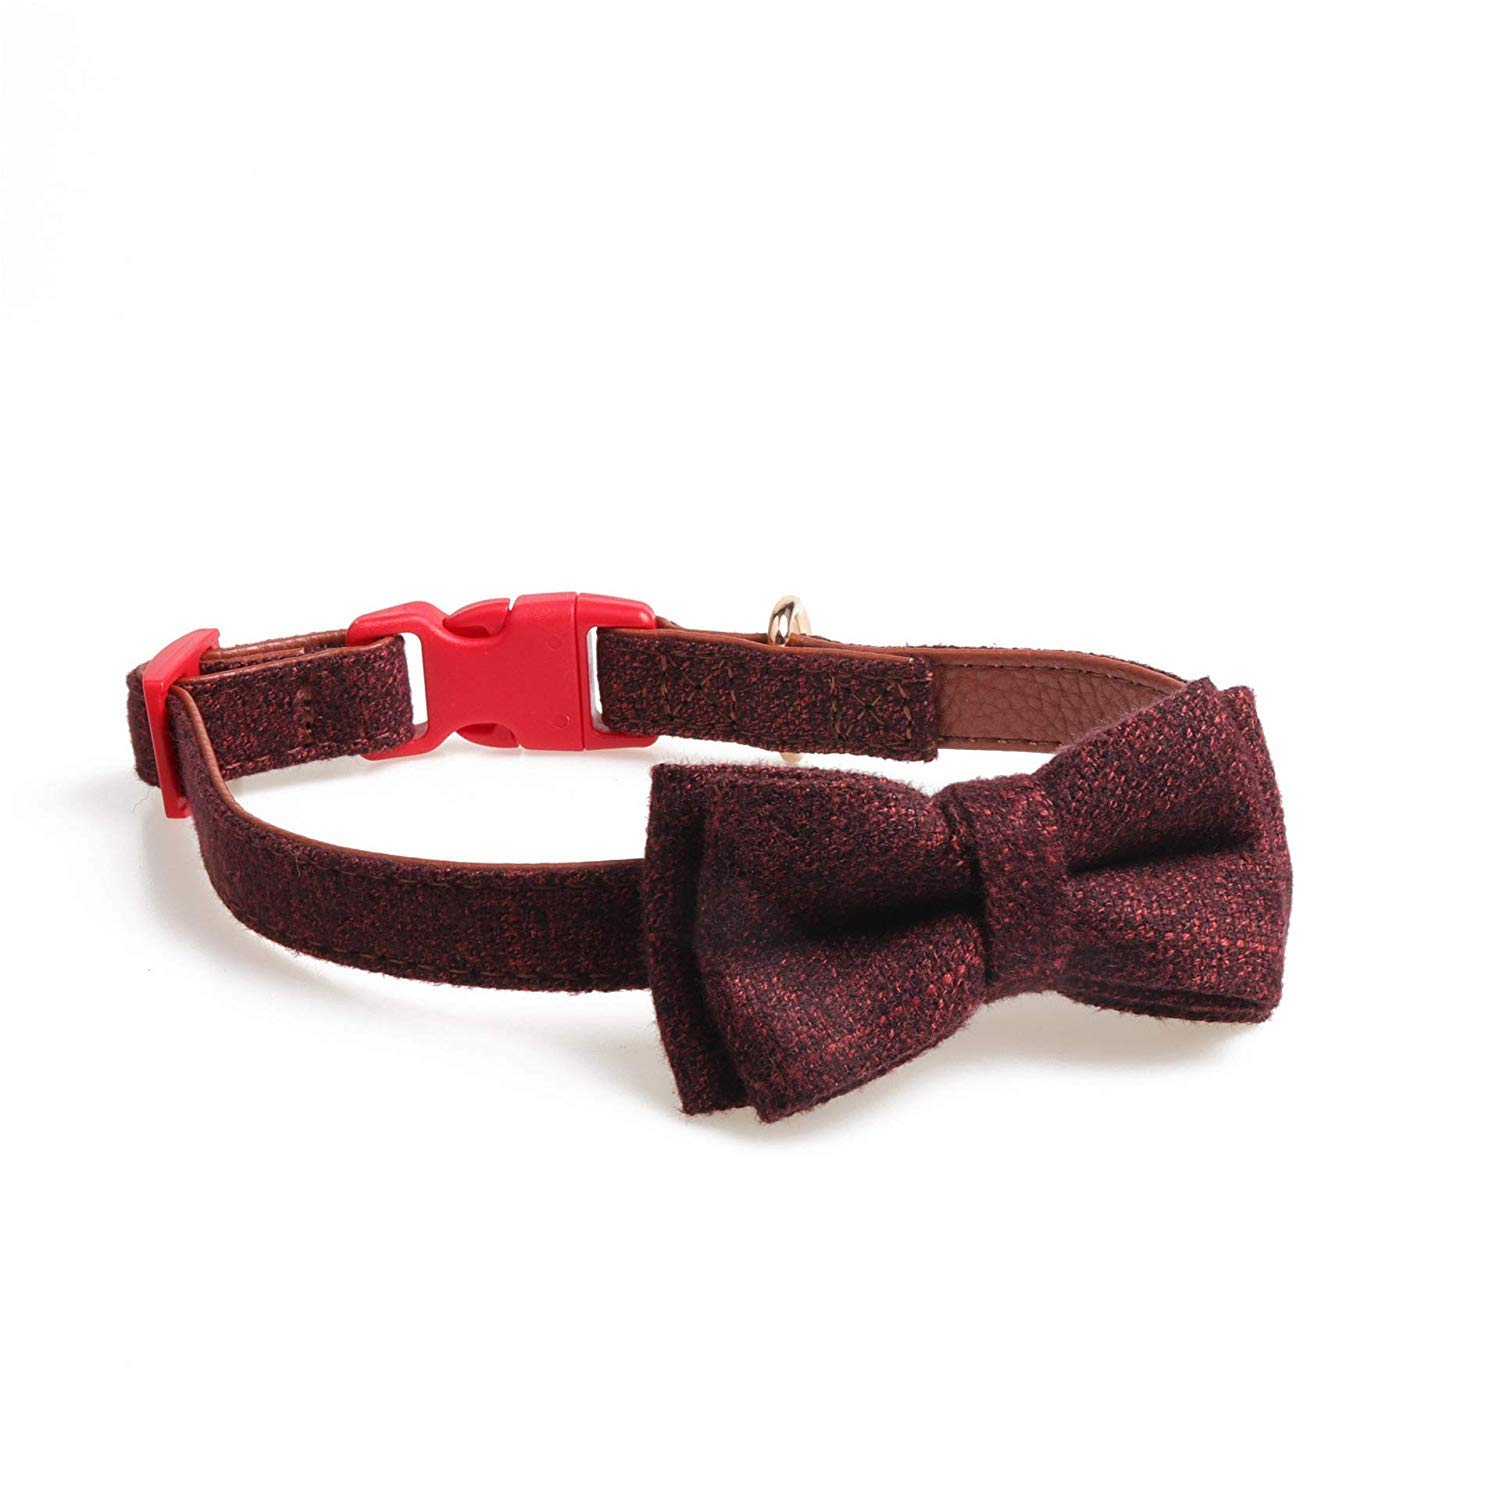 Red Brown 2.5×3655cm Lindou Pet collar Pet collar safety buckle bow decorative dog collar,Wine red,2.0×3045cm (color   Red Brown 2.5×3655cm)